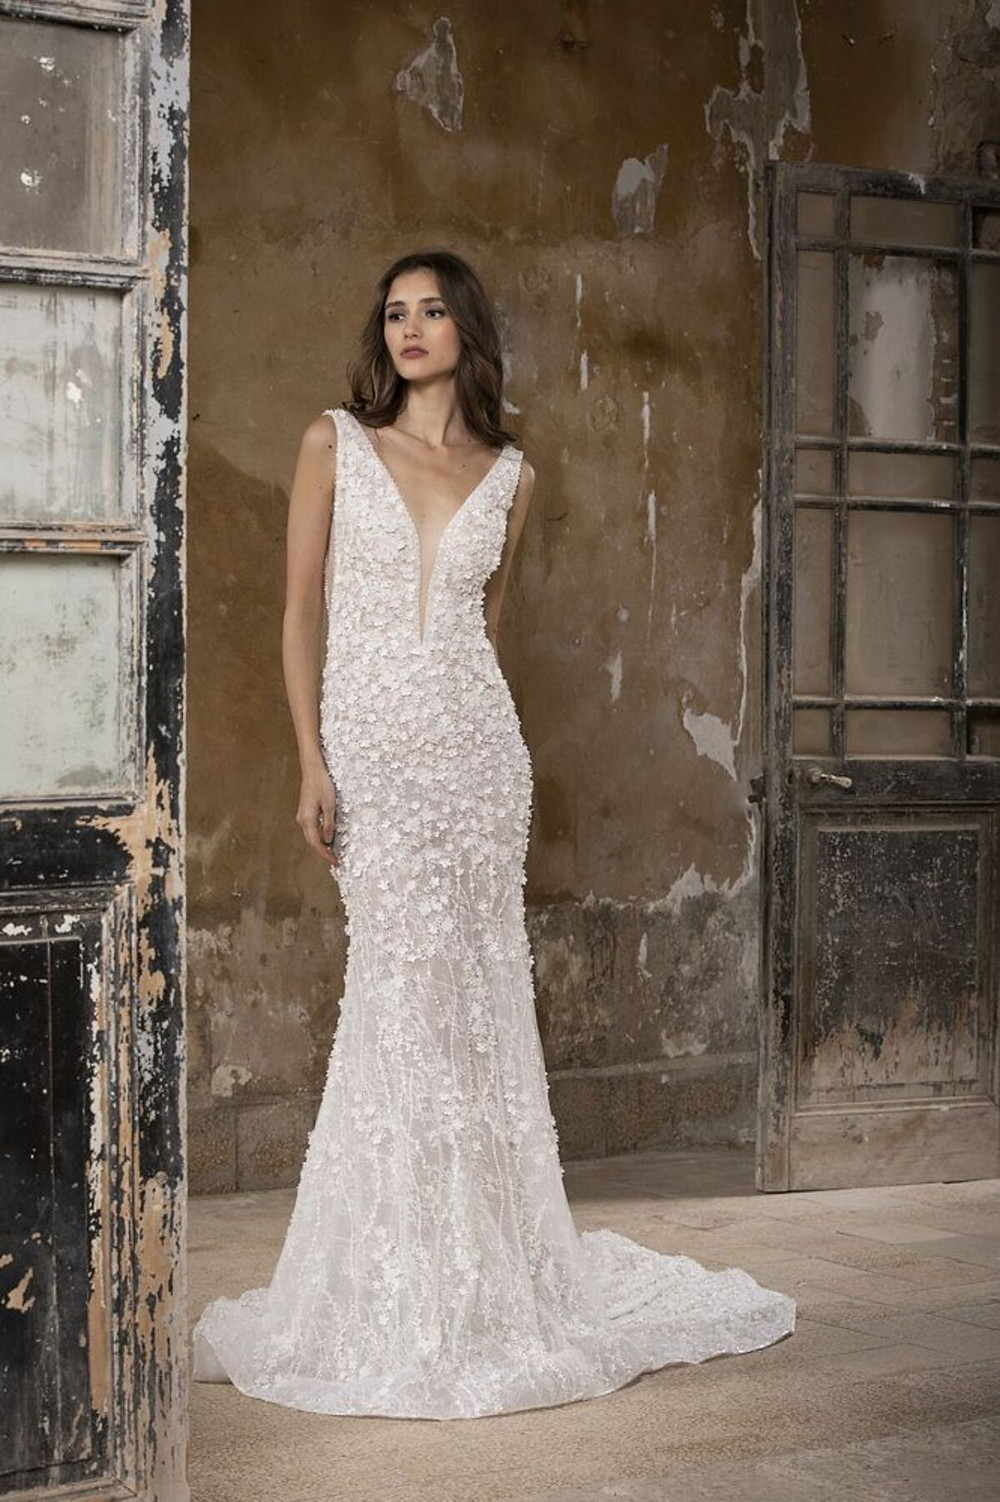 A mermaid-cut wedding gown with a deep-V, made with three-dimensional floral lace and scattered embroidery